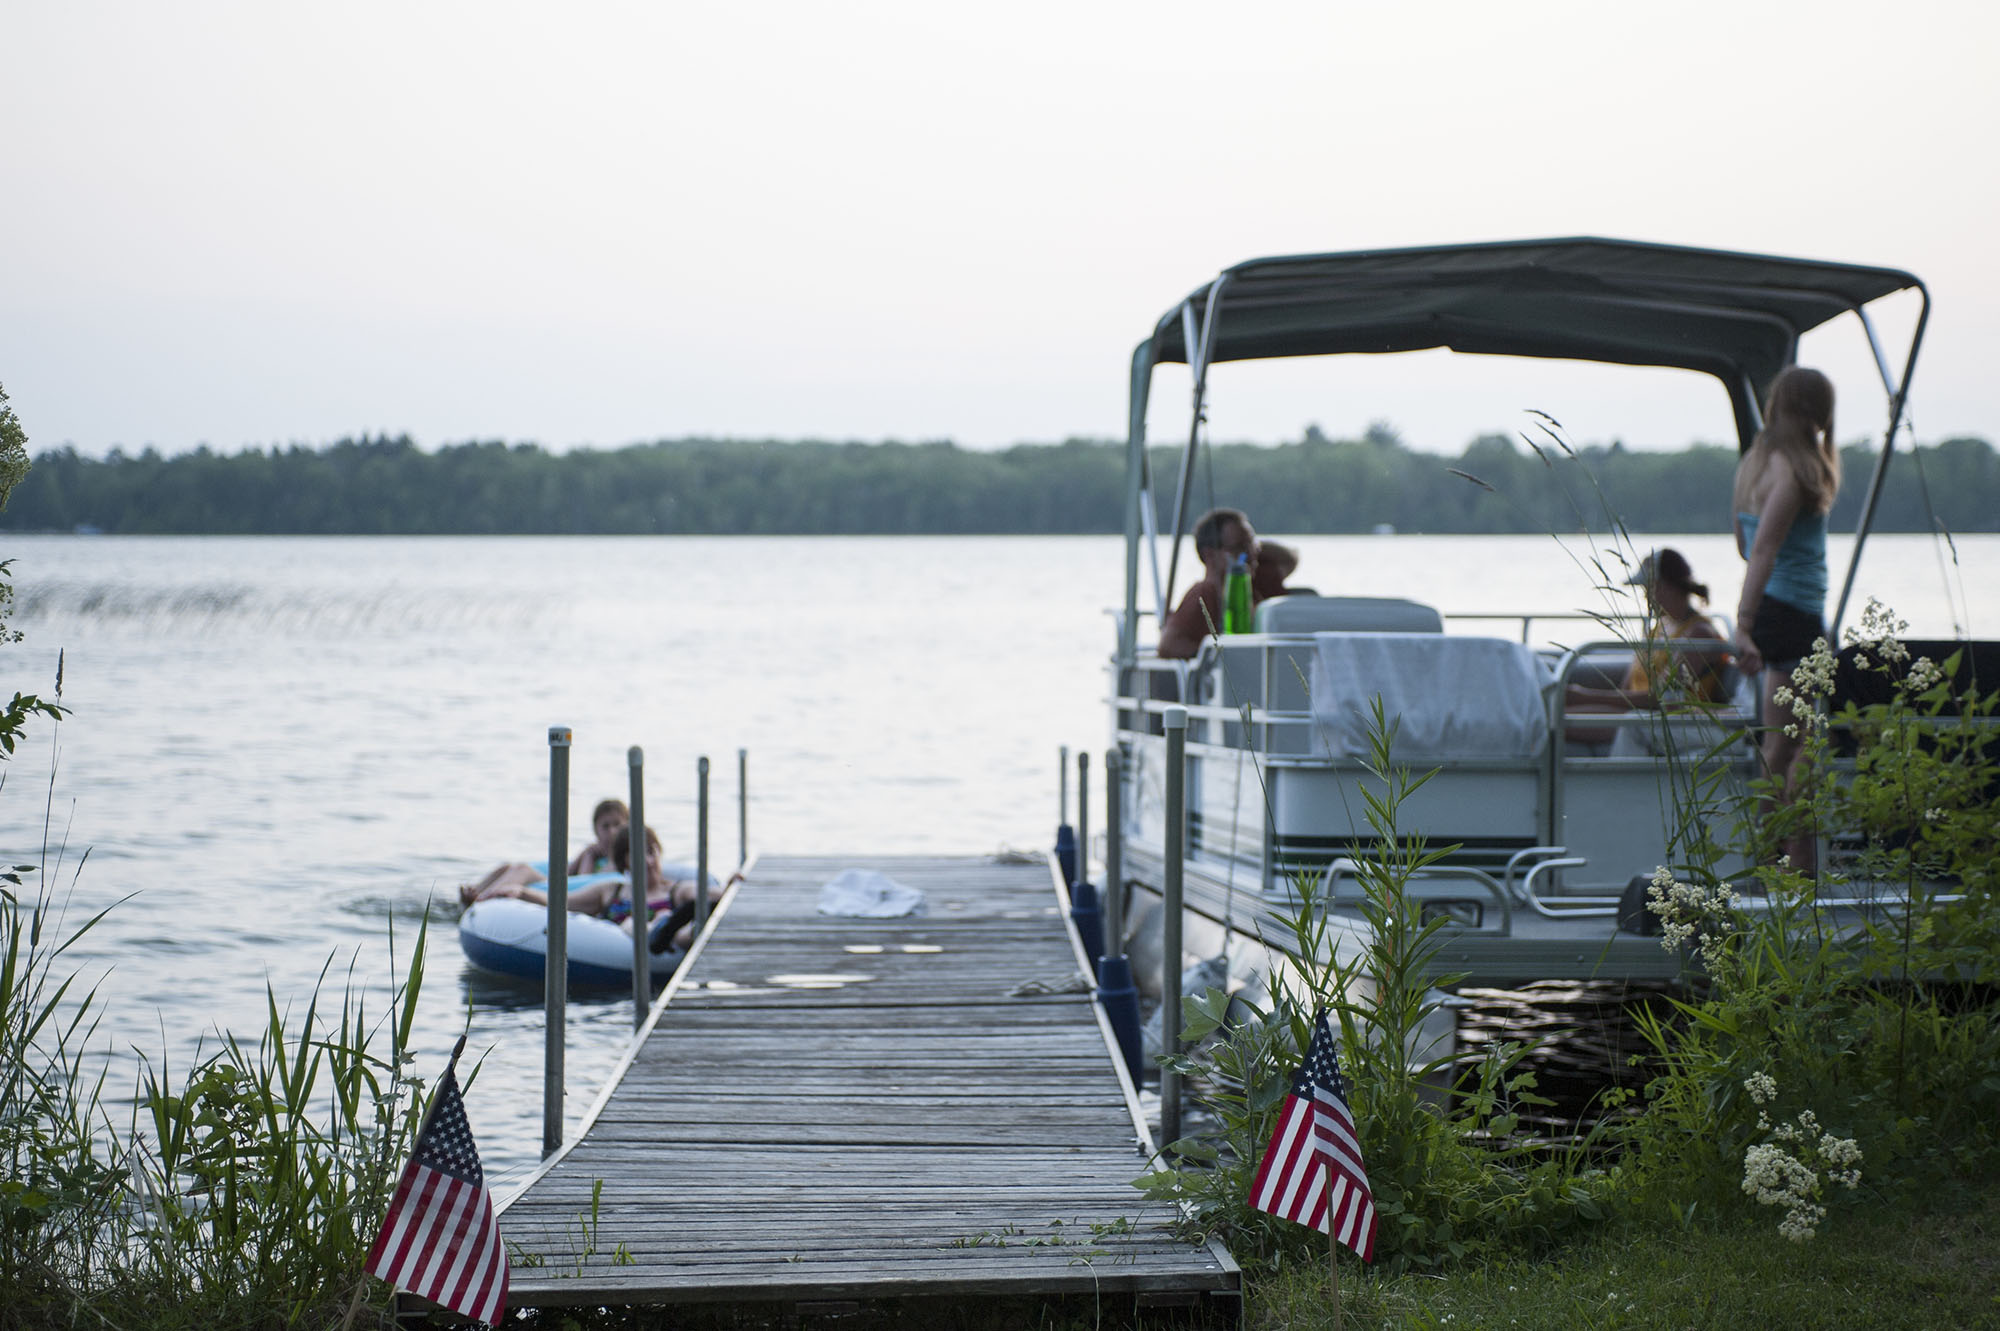 family on playnorth watersports pontoon boat rental at dock in leelanau and traverse city